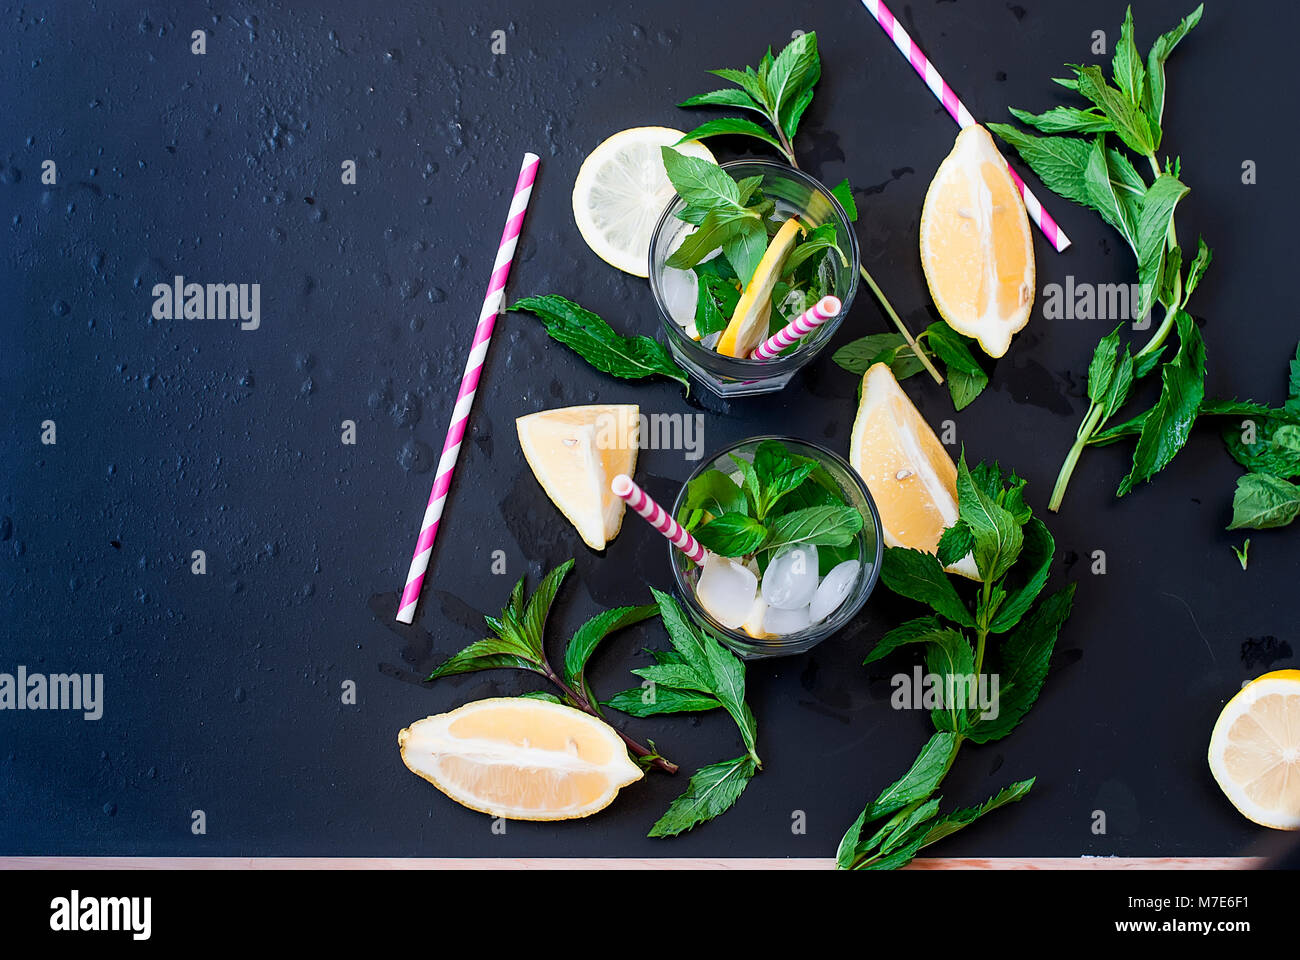 Fresh homemade lemonade in glass with ice and mint. Stock Photo